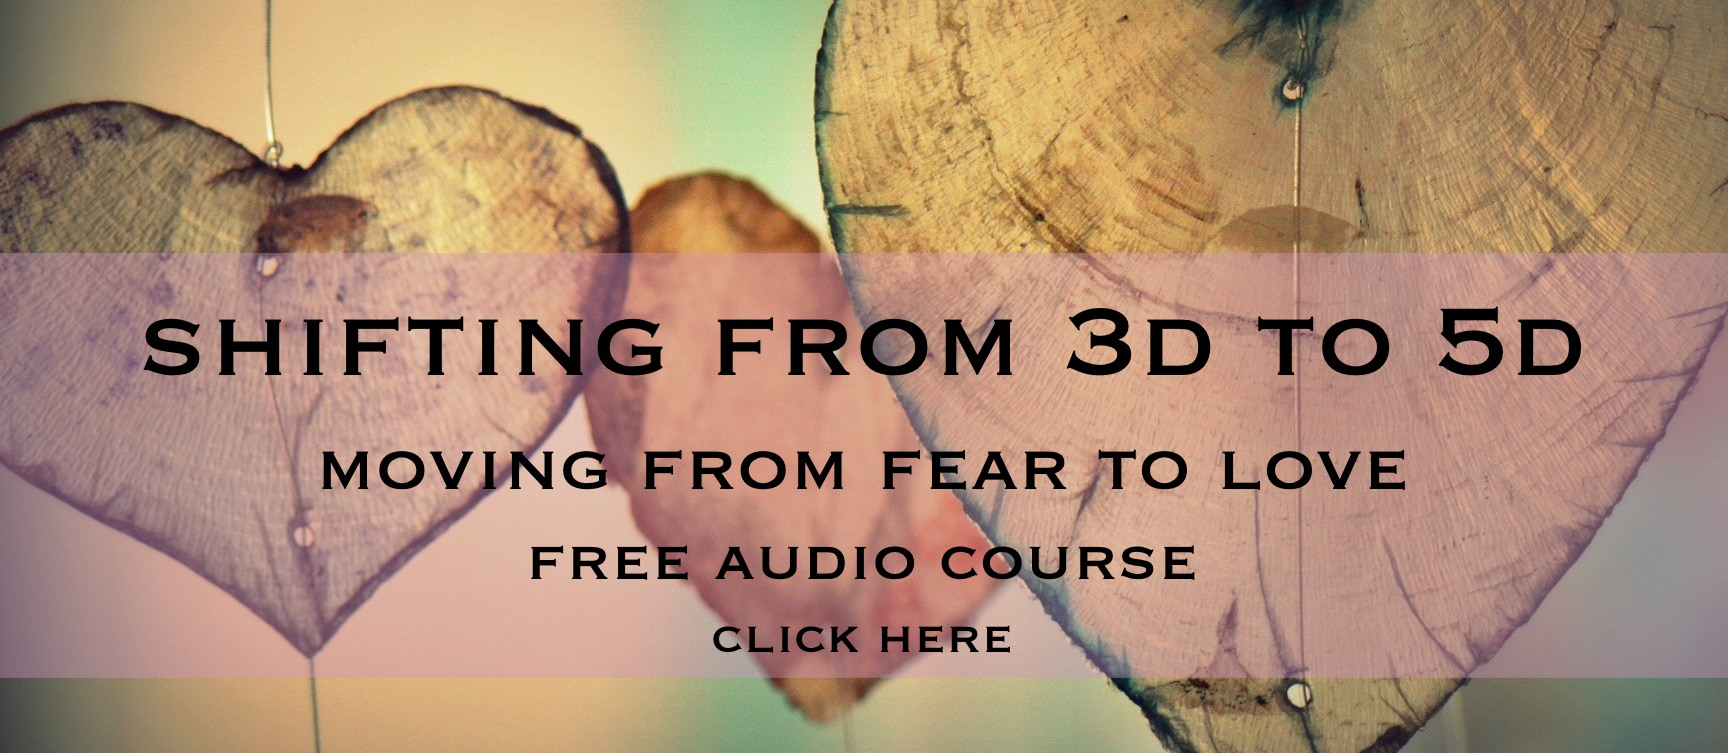 free course 3d to 5d